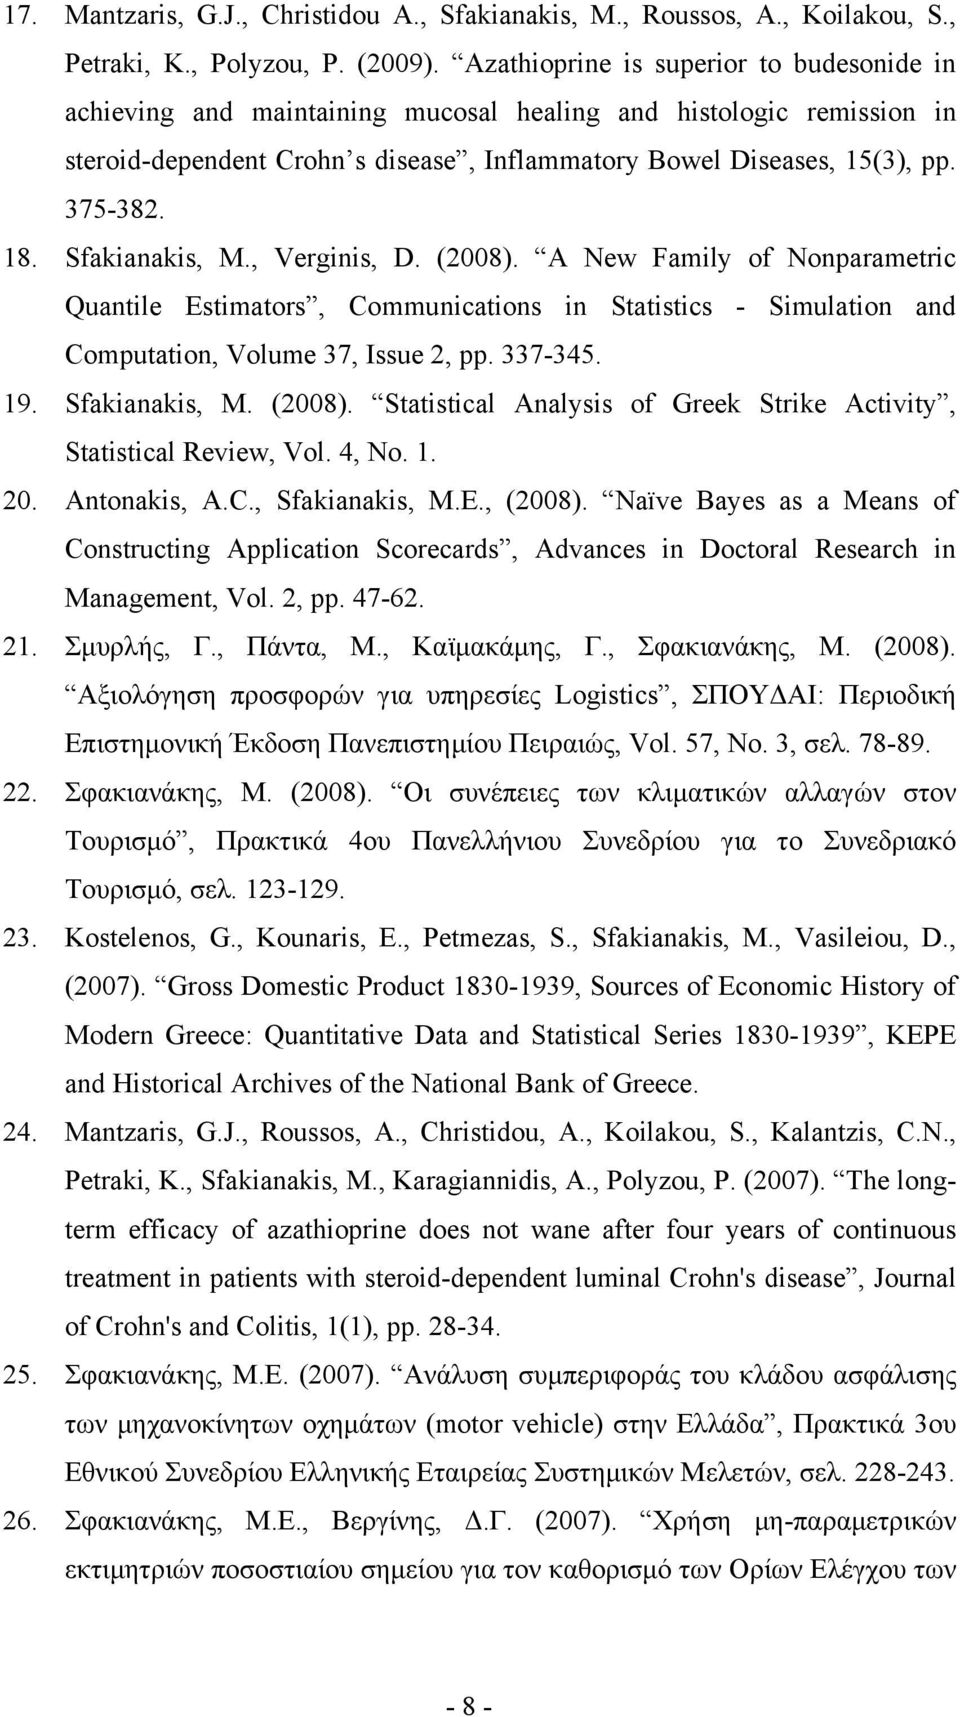 Sfakianakis, M., Verginis, D. (2008). A New Family of Nonparametric Quantile Estimators, Communications in Statistics - Simulation and Computation, Volume 37, Issue 2, pp. 337-345. 19. Sfakianakis, M.